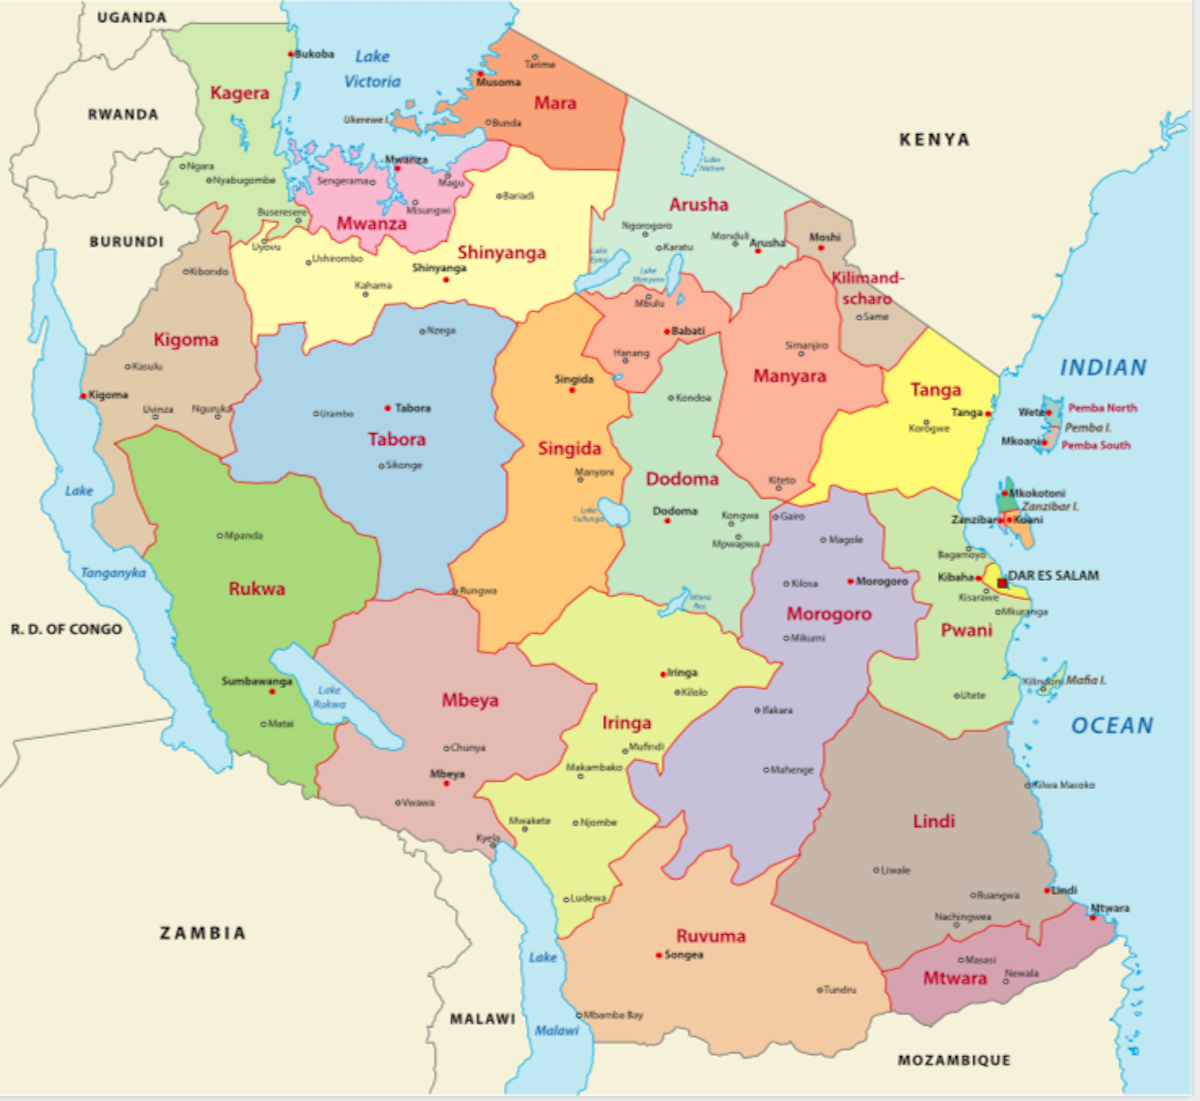 Political Map of Tanzania displaying its 31 regions and their capital cities, and the national capital of Dodoma.